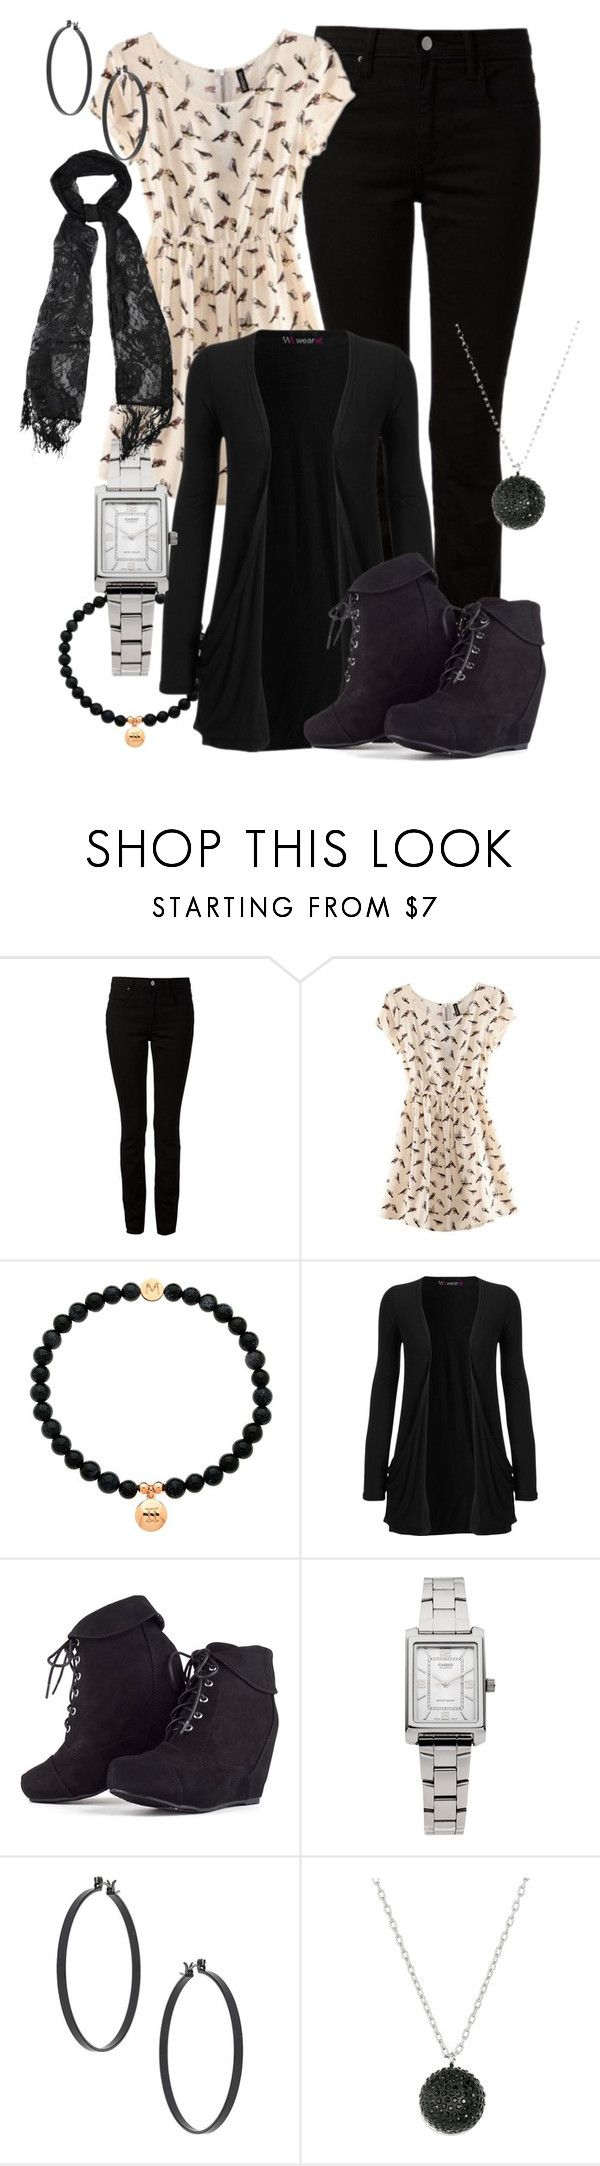 """""""set 12"""" by bebe6121985 on Polyvore featuring moda, Alexander Wang, Melissa Odabash, WearAll, Casio, Topshop, Marc by Marc Jacobs i Avenue"""